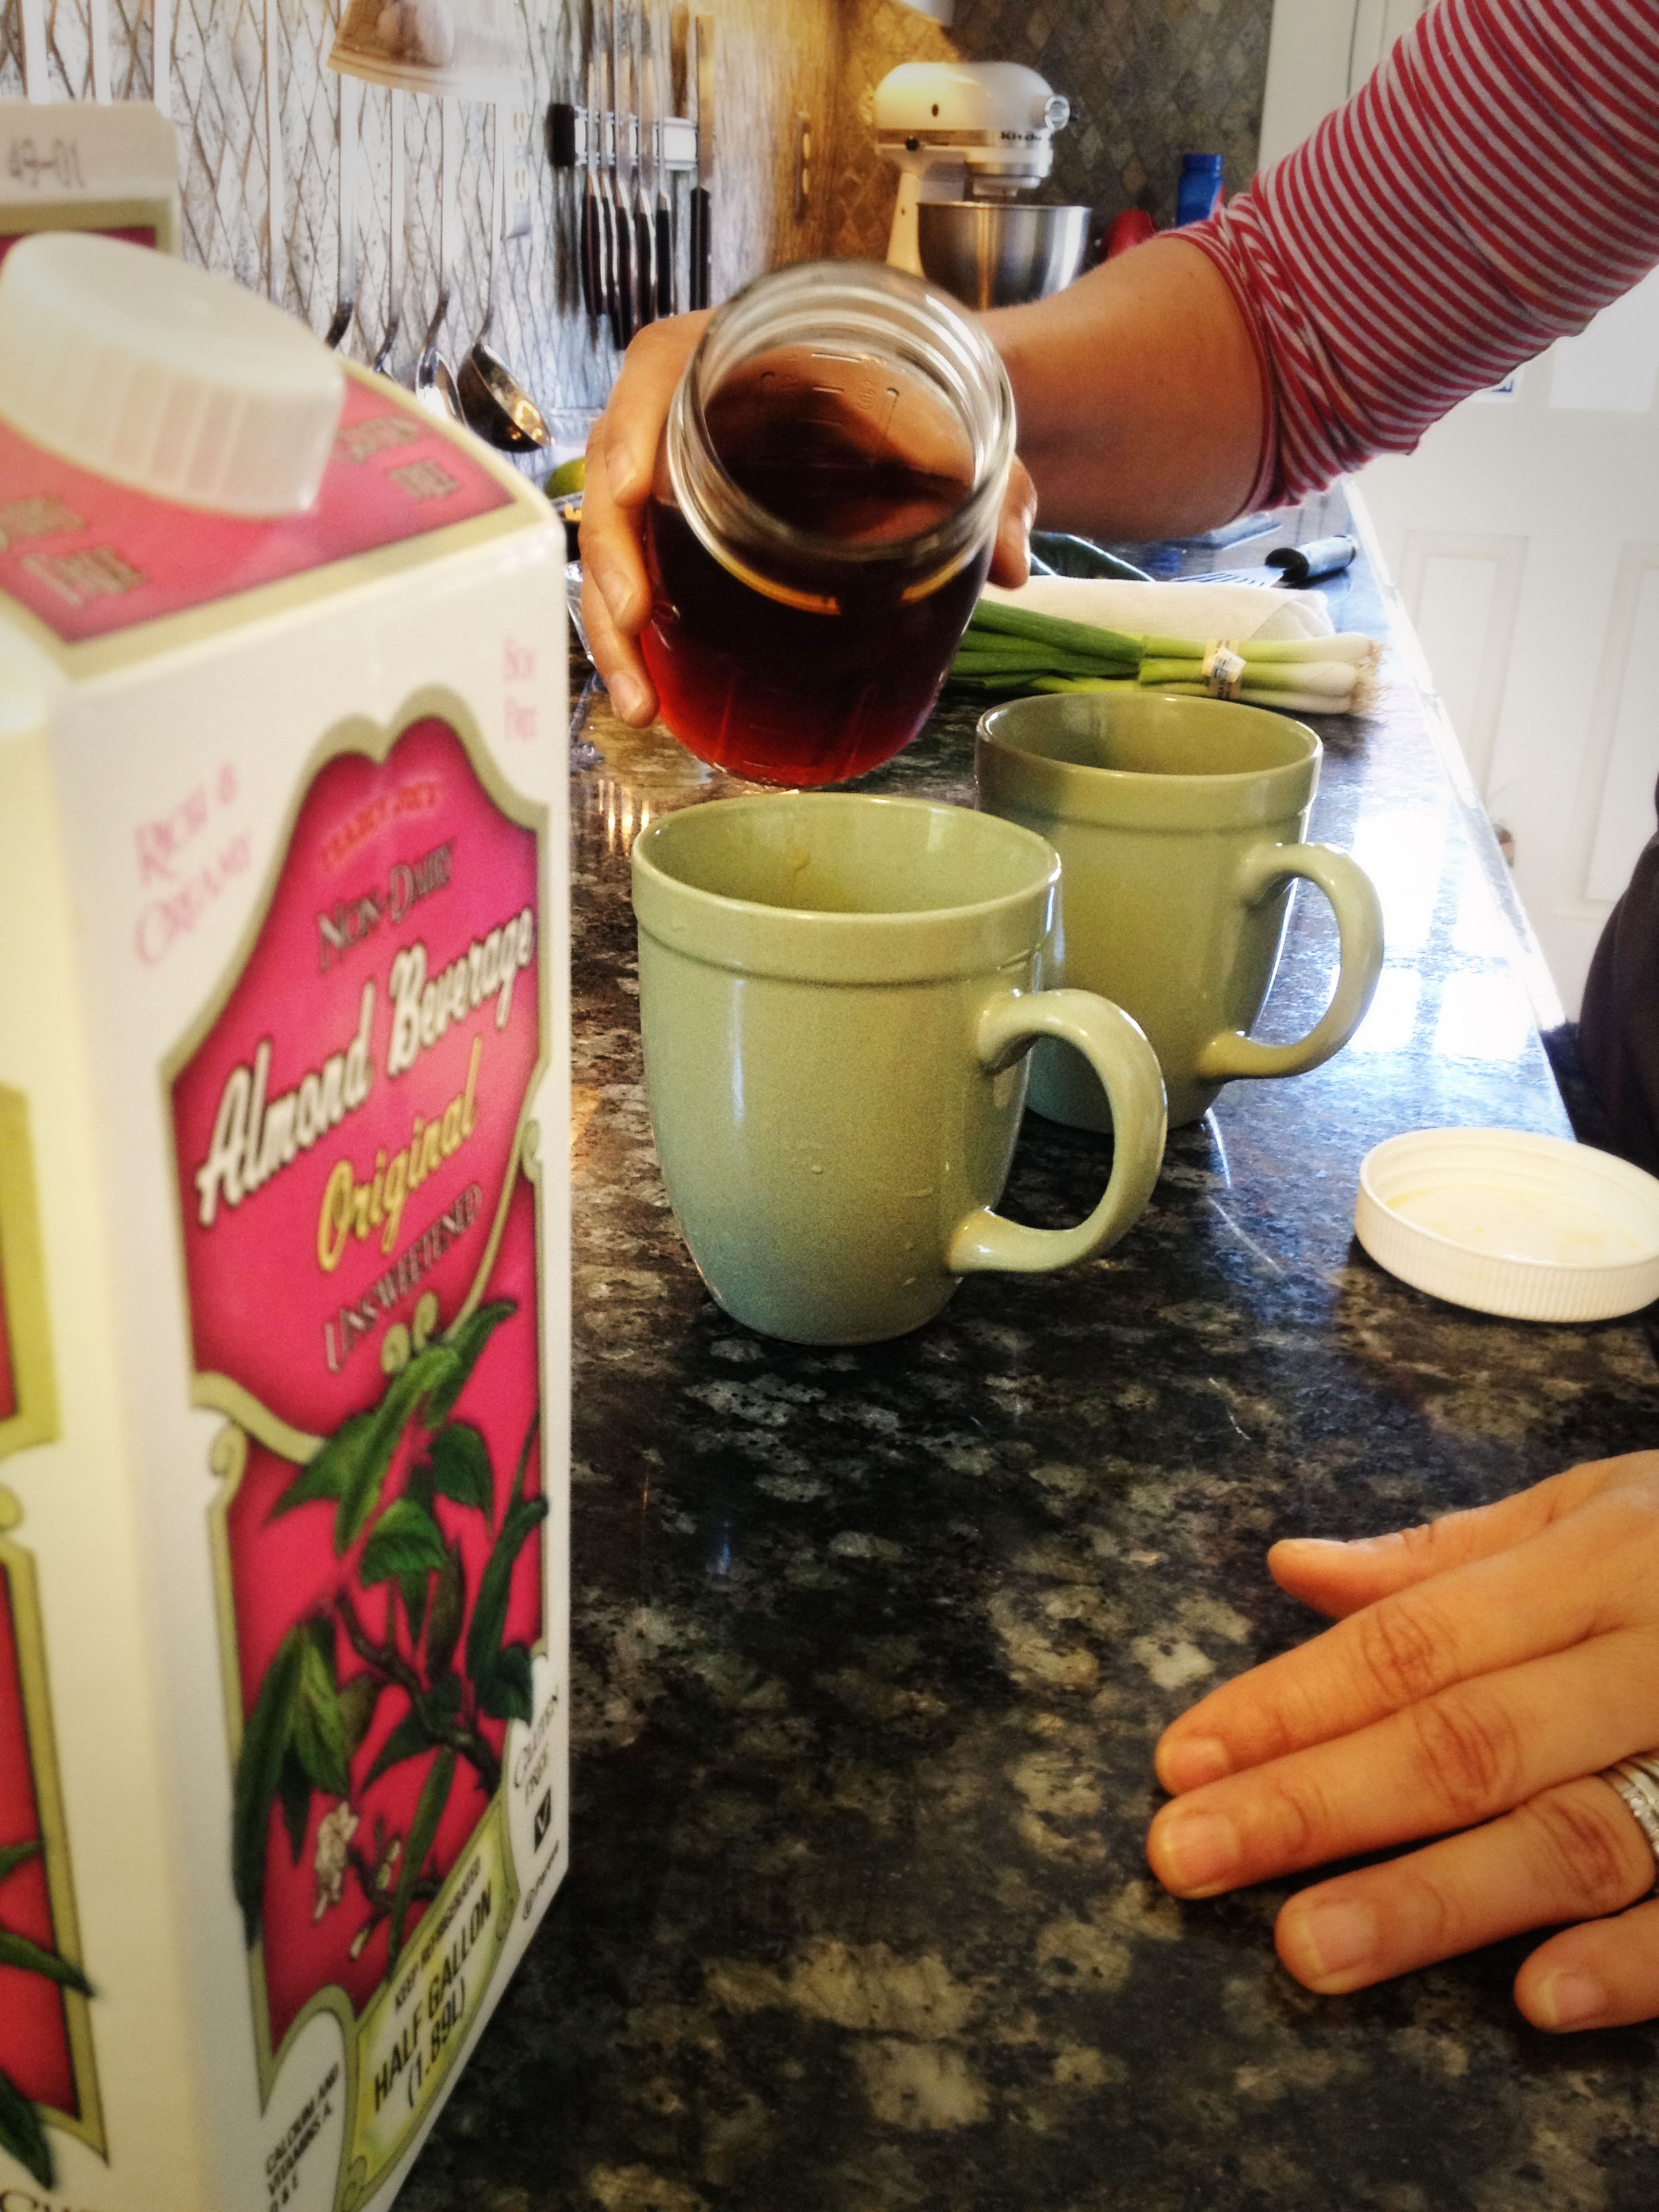 Sandra pours concentrated rooibus (an herb) into our chai tea.